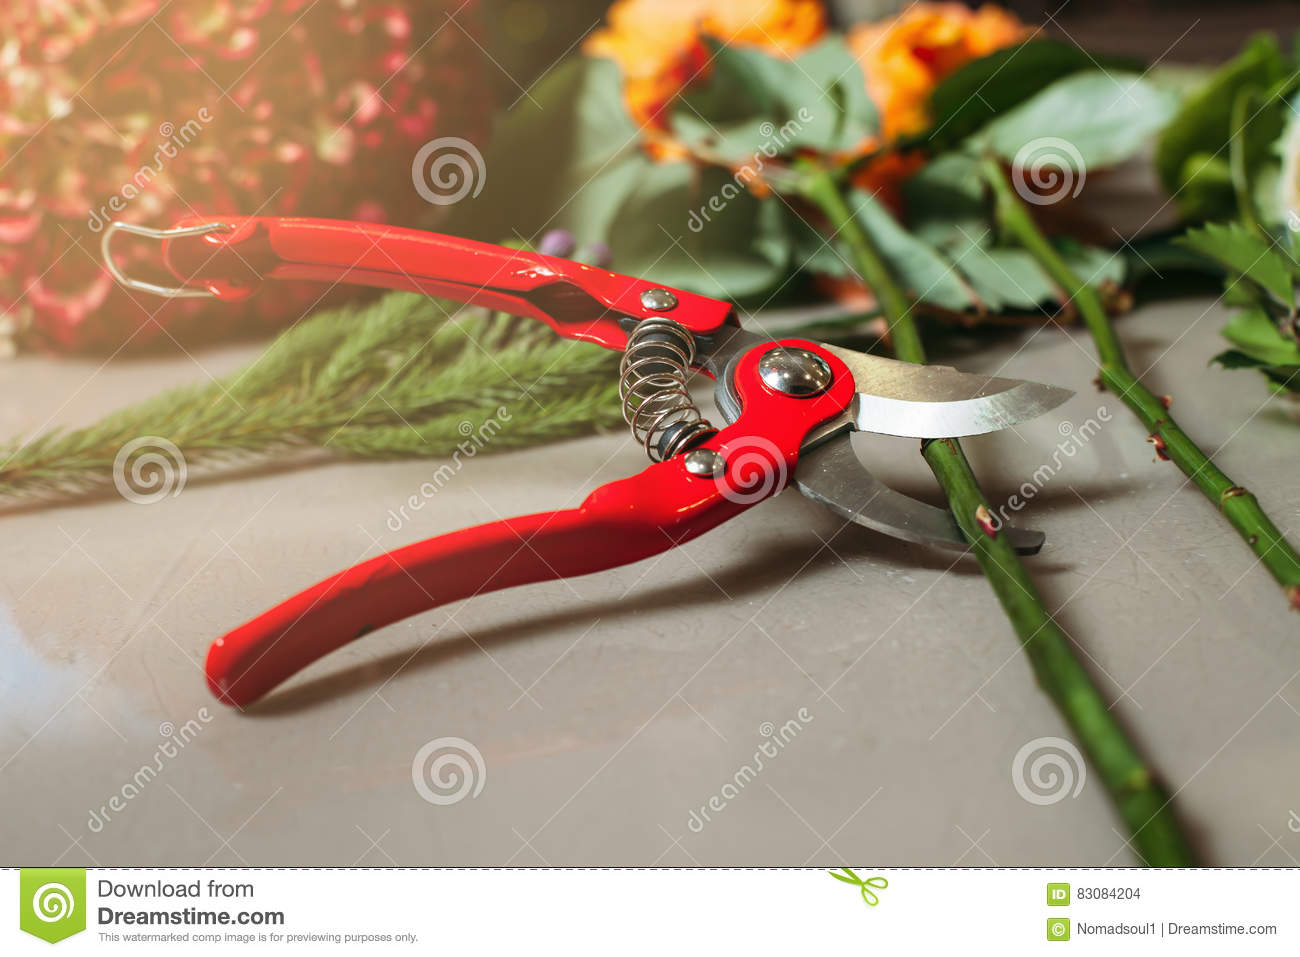 red garden scissors cutting rose. stock photo - image: 83084204